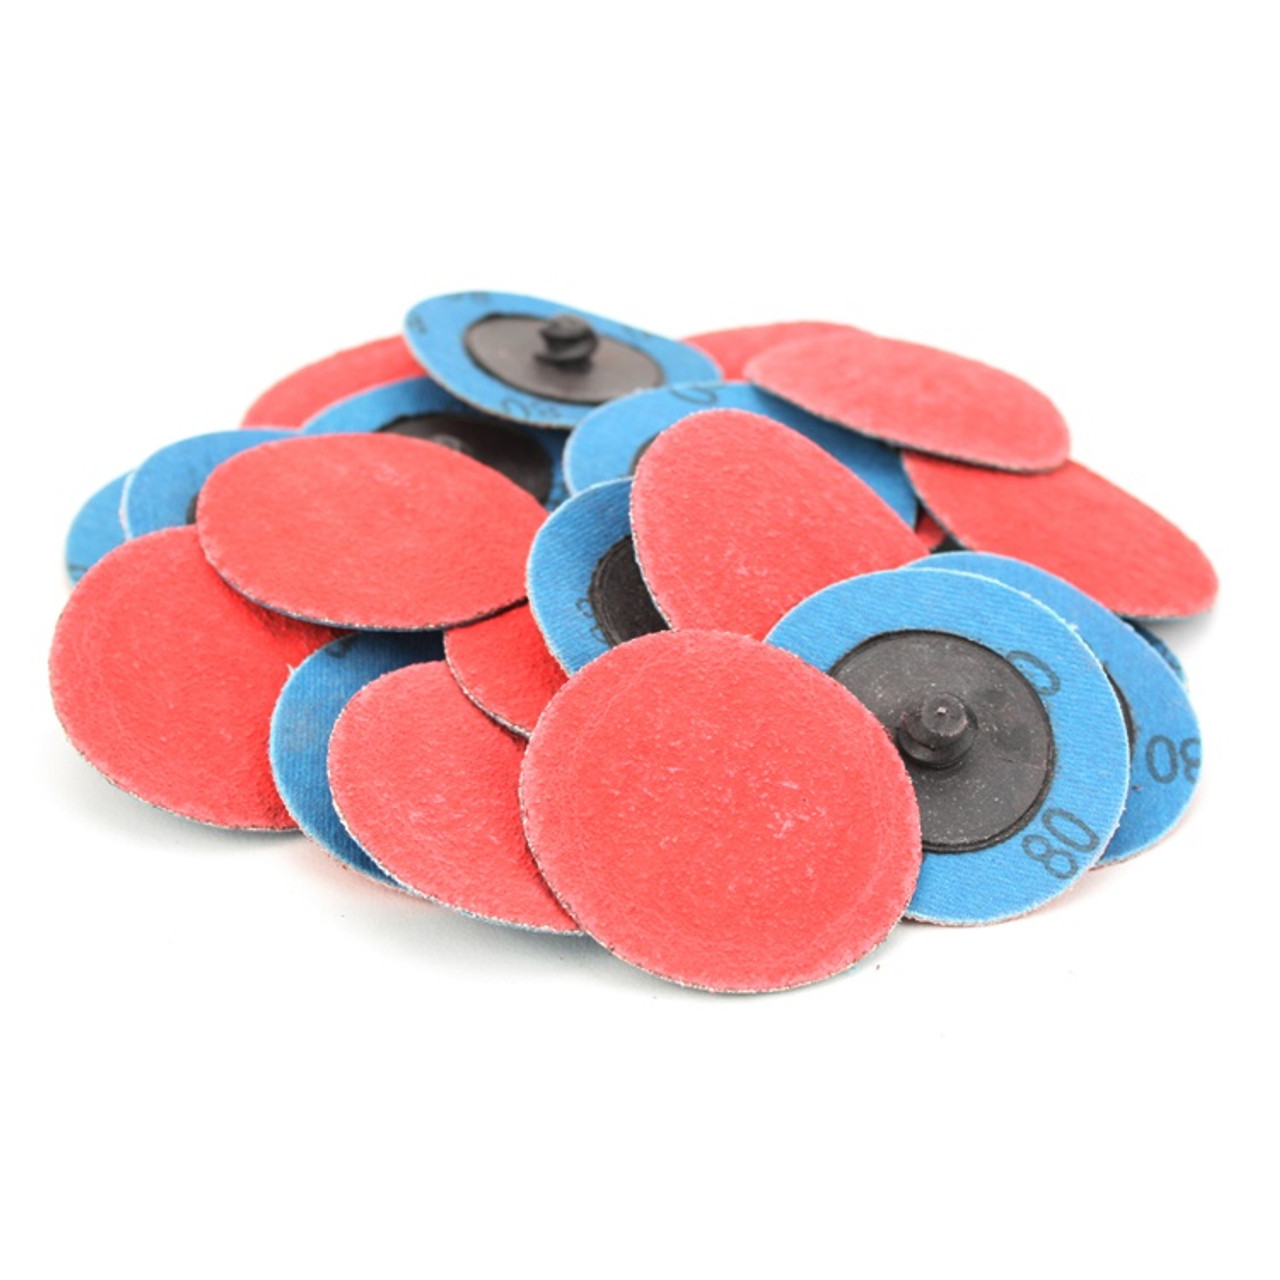 52 Pack Sanding Disc 2inch Surface Conditioning Sanding Grinding Polish Discs